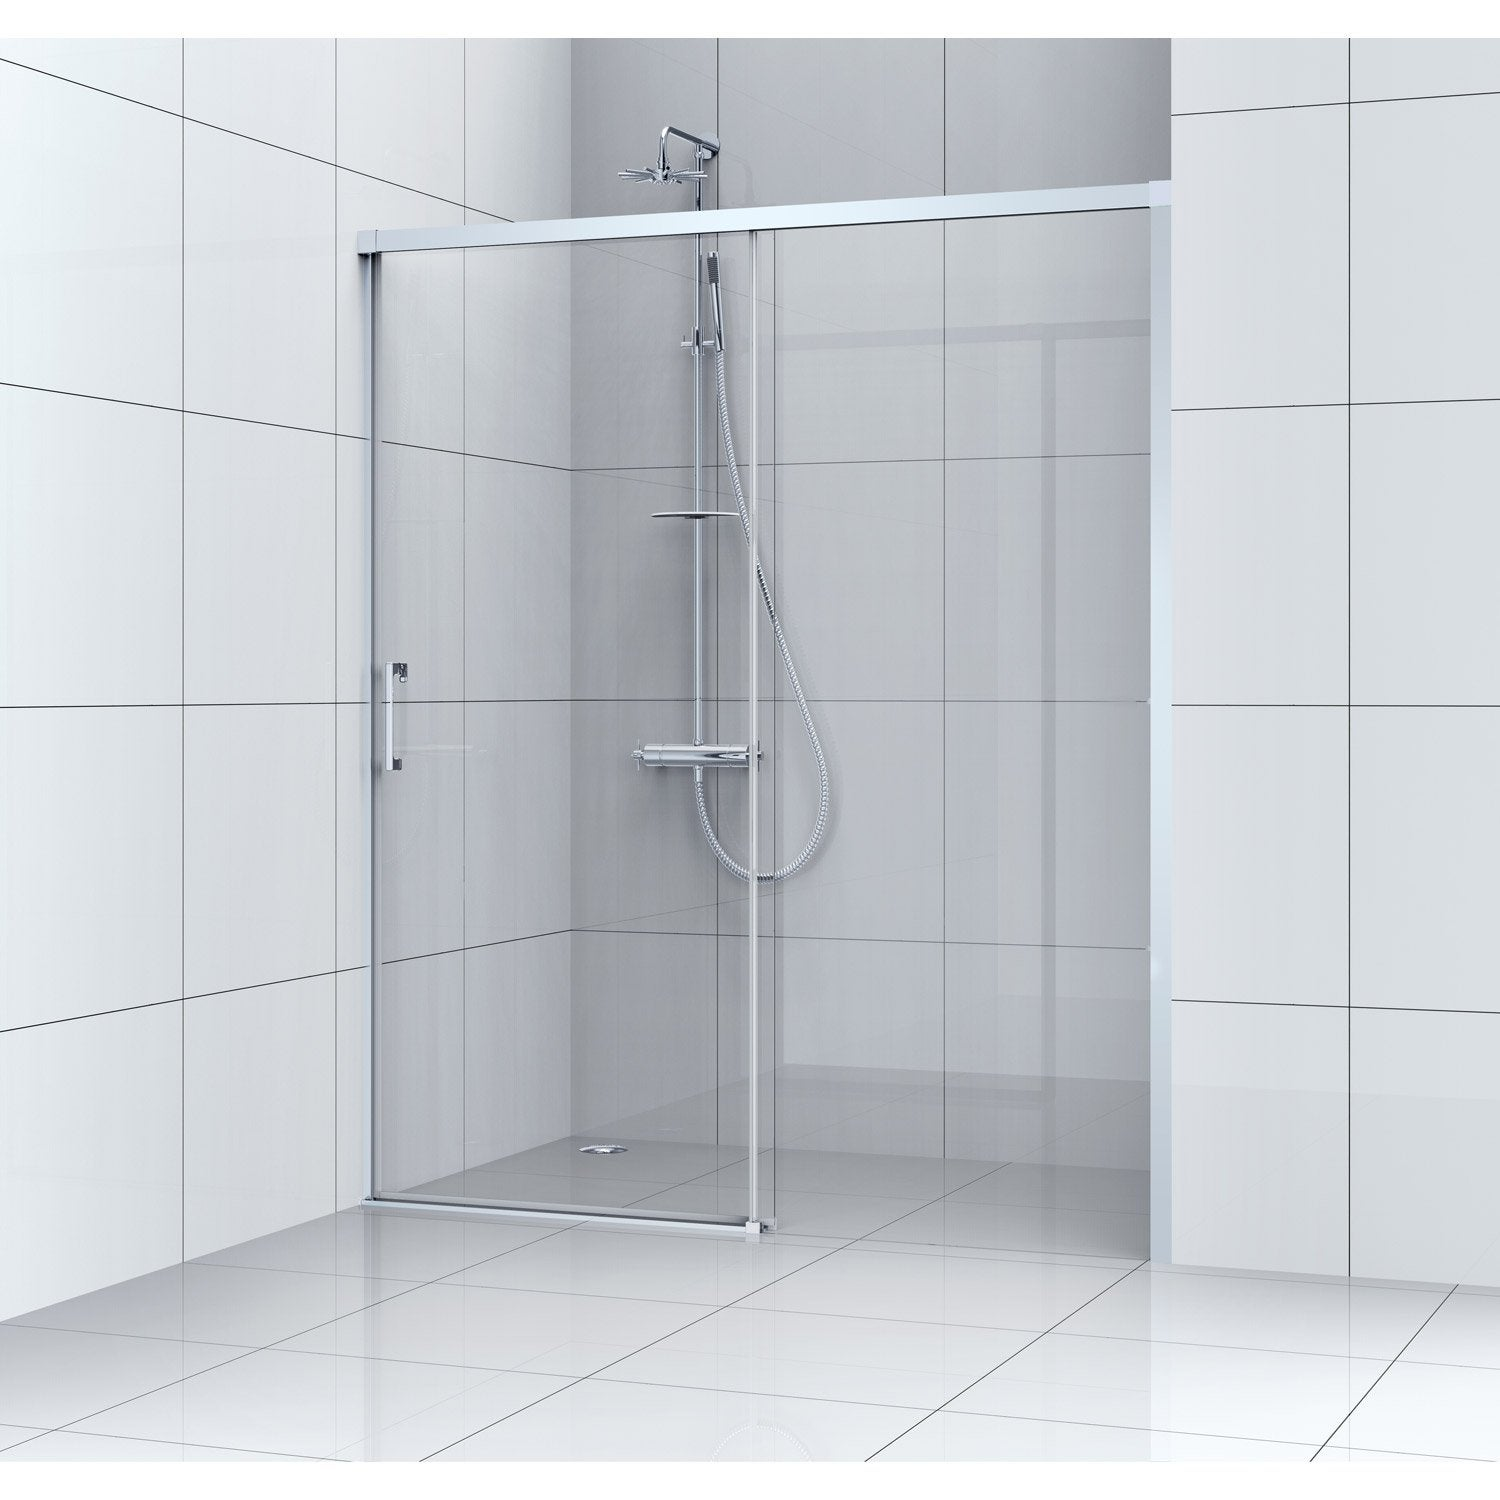 Porte de douche coulissante 120 cm transparent remix for Porte de douche leroy merlin